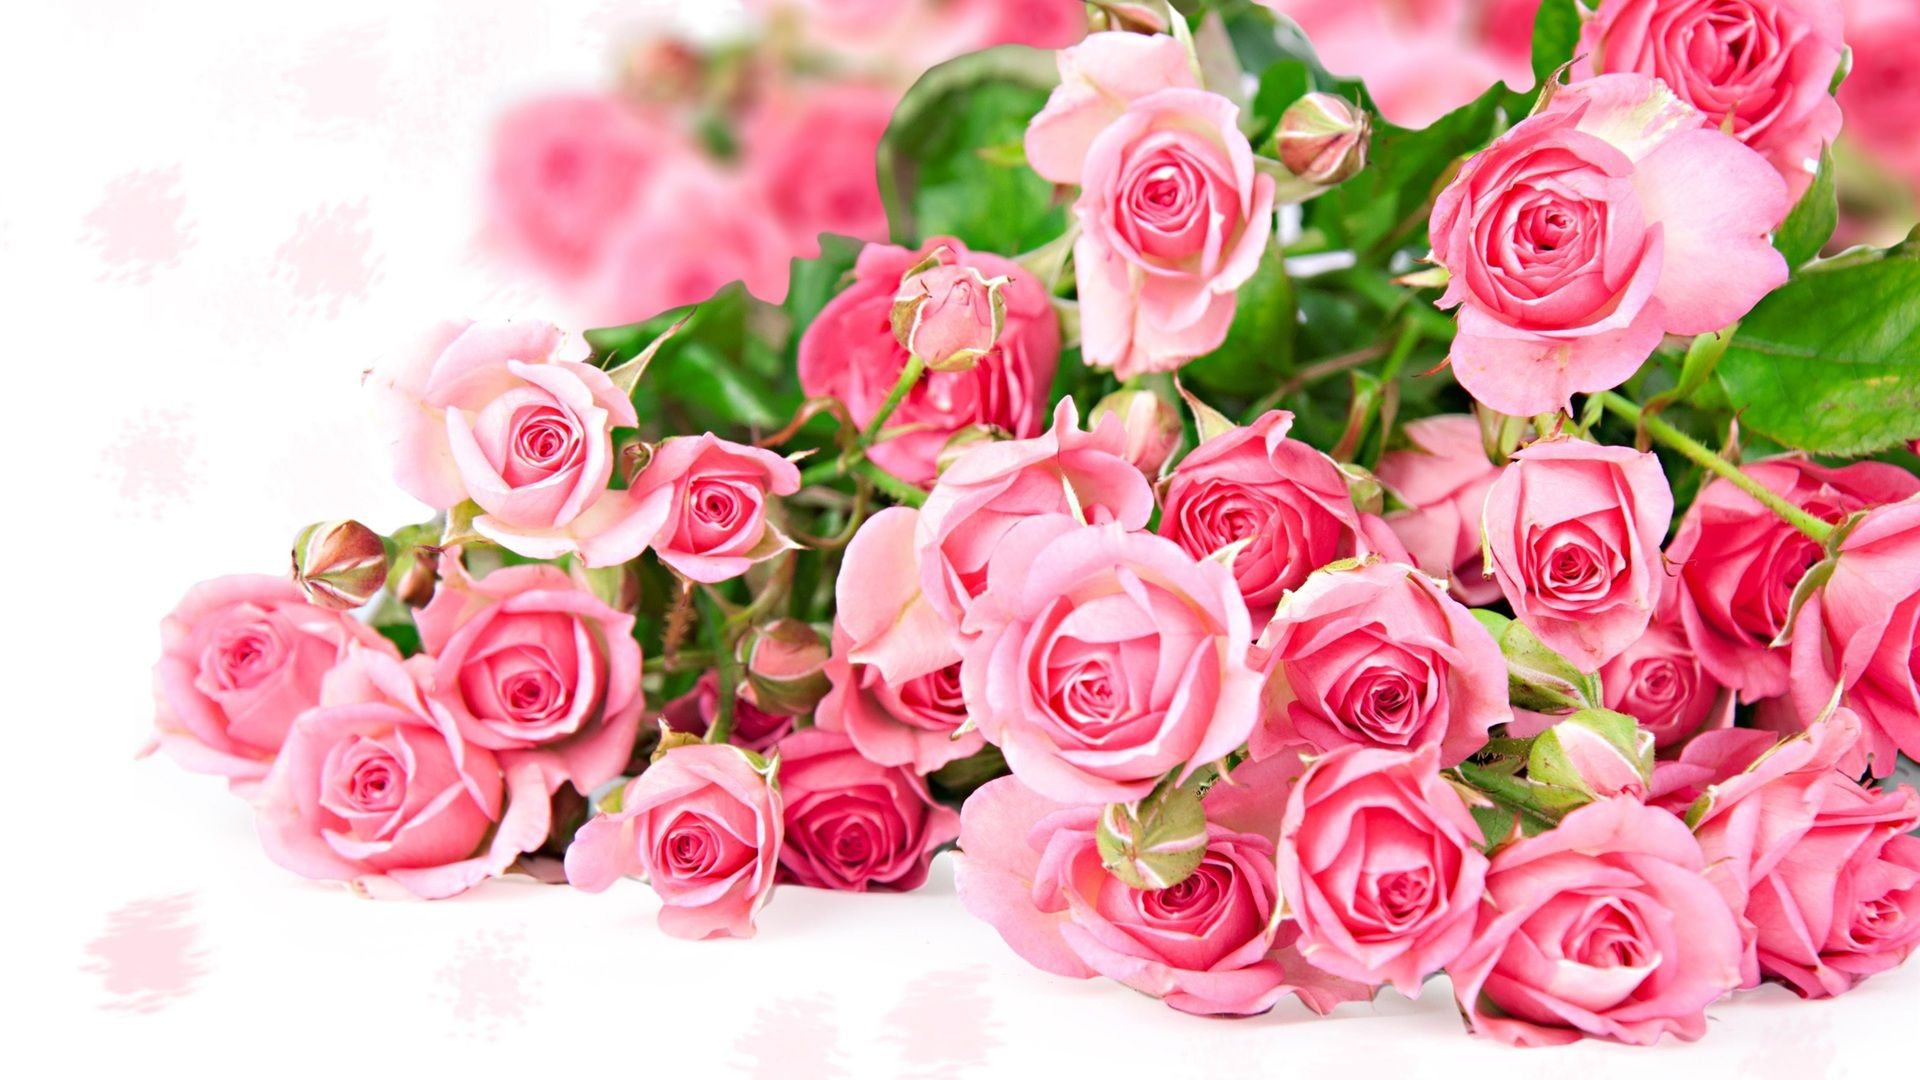 Love rose flower free stock photos download Free stock